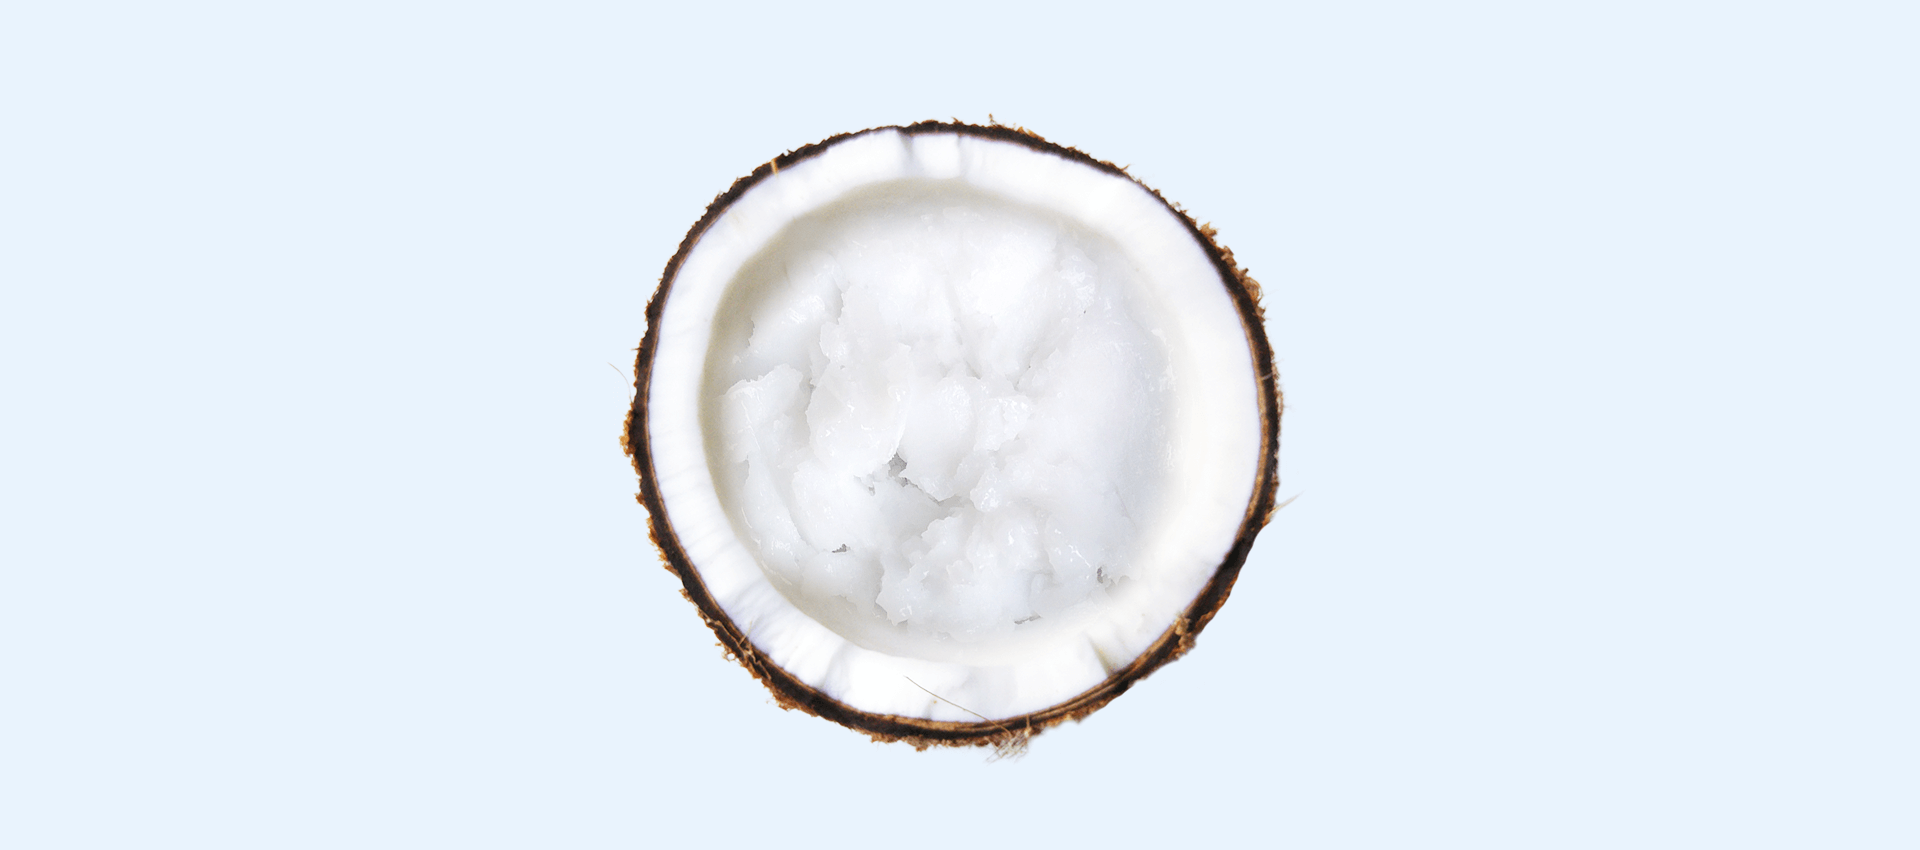 Toxin-free living: coconut oil, baking soda & essential oils